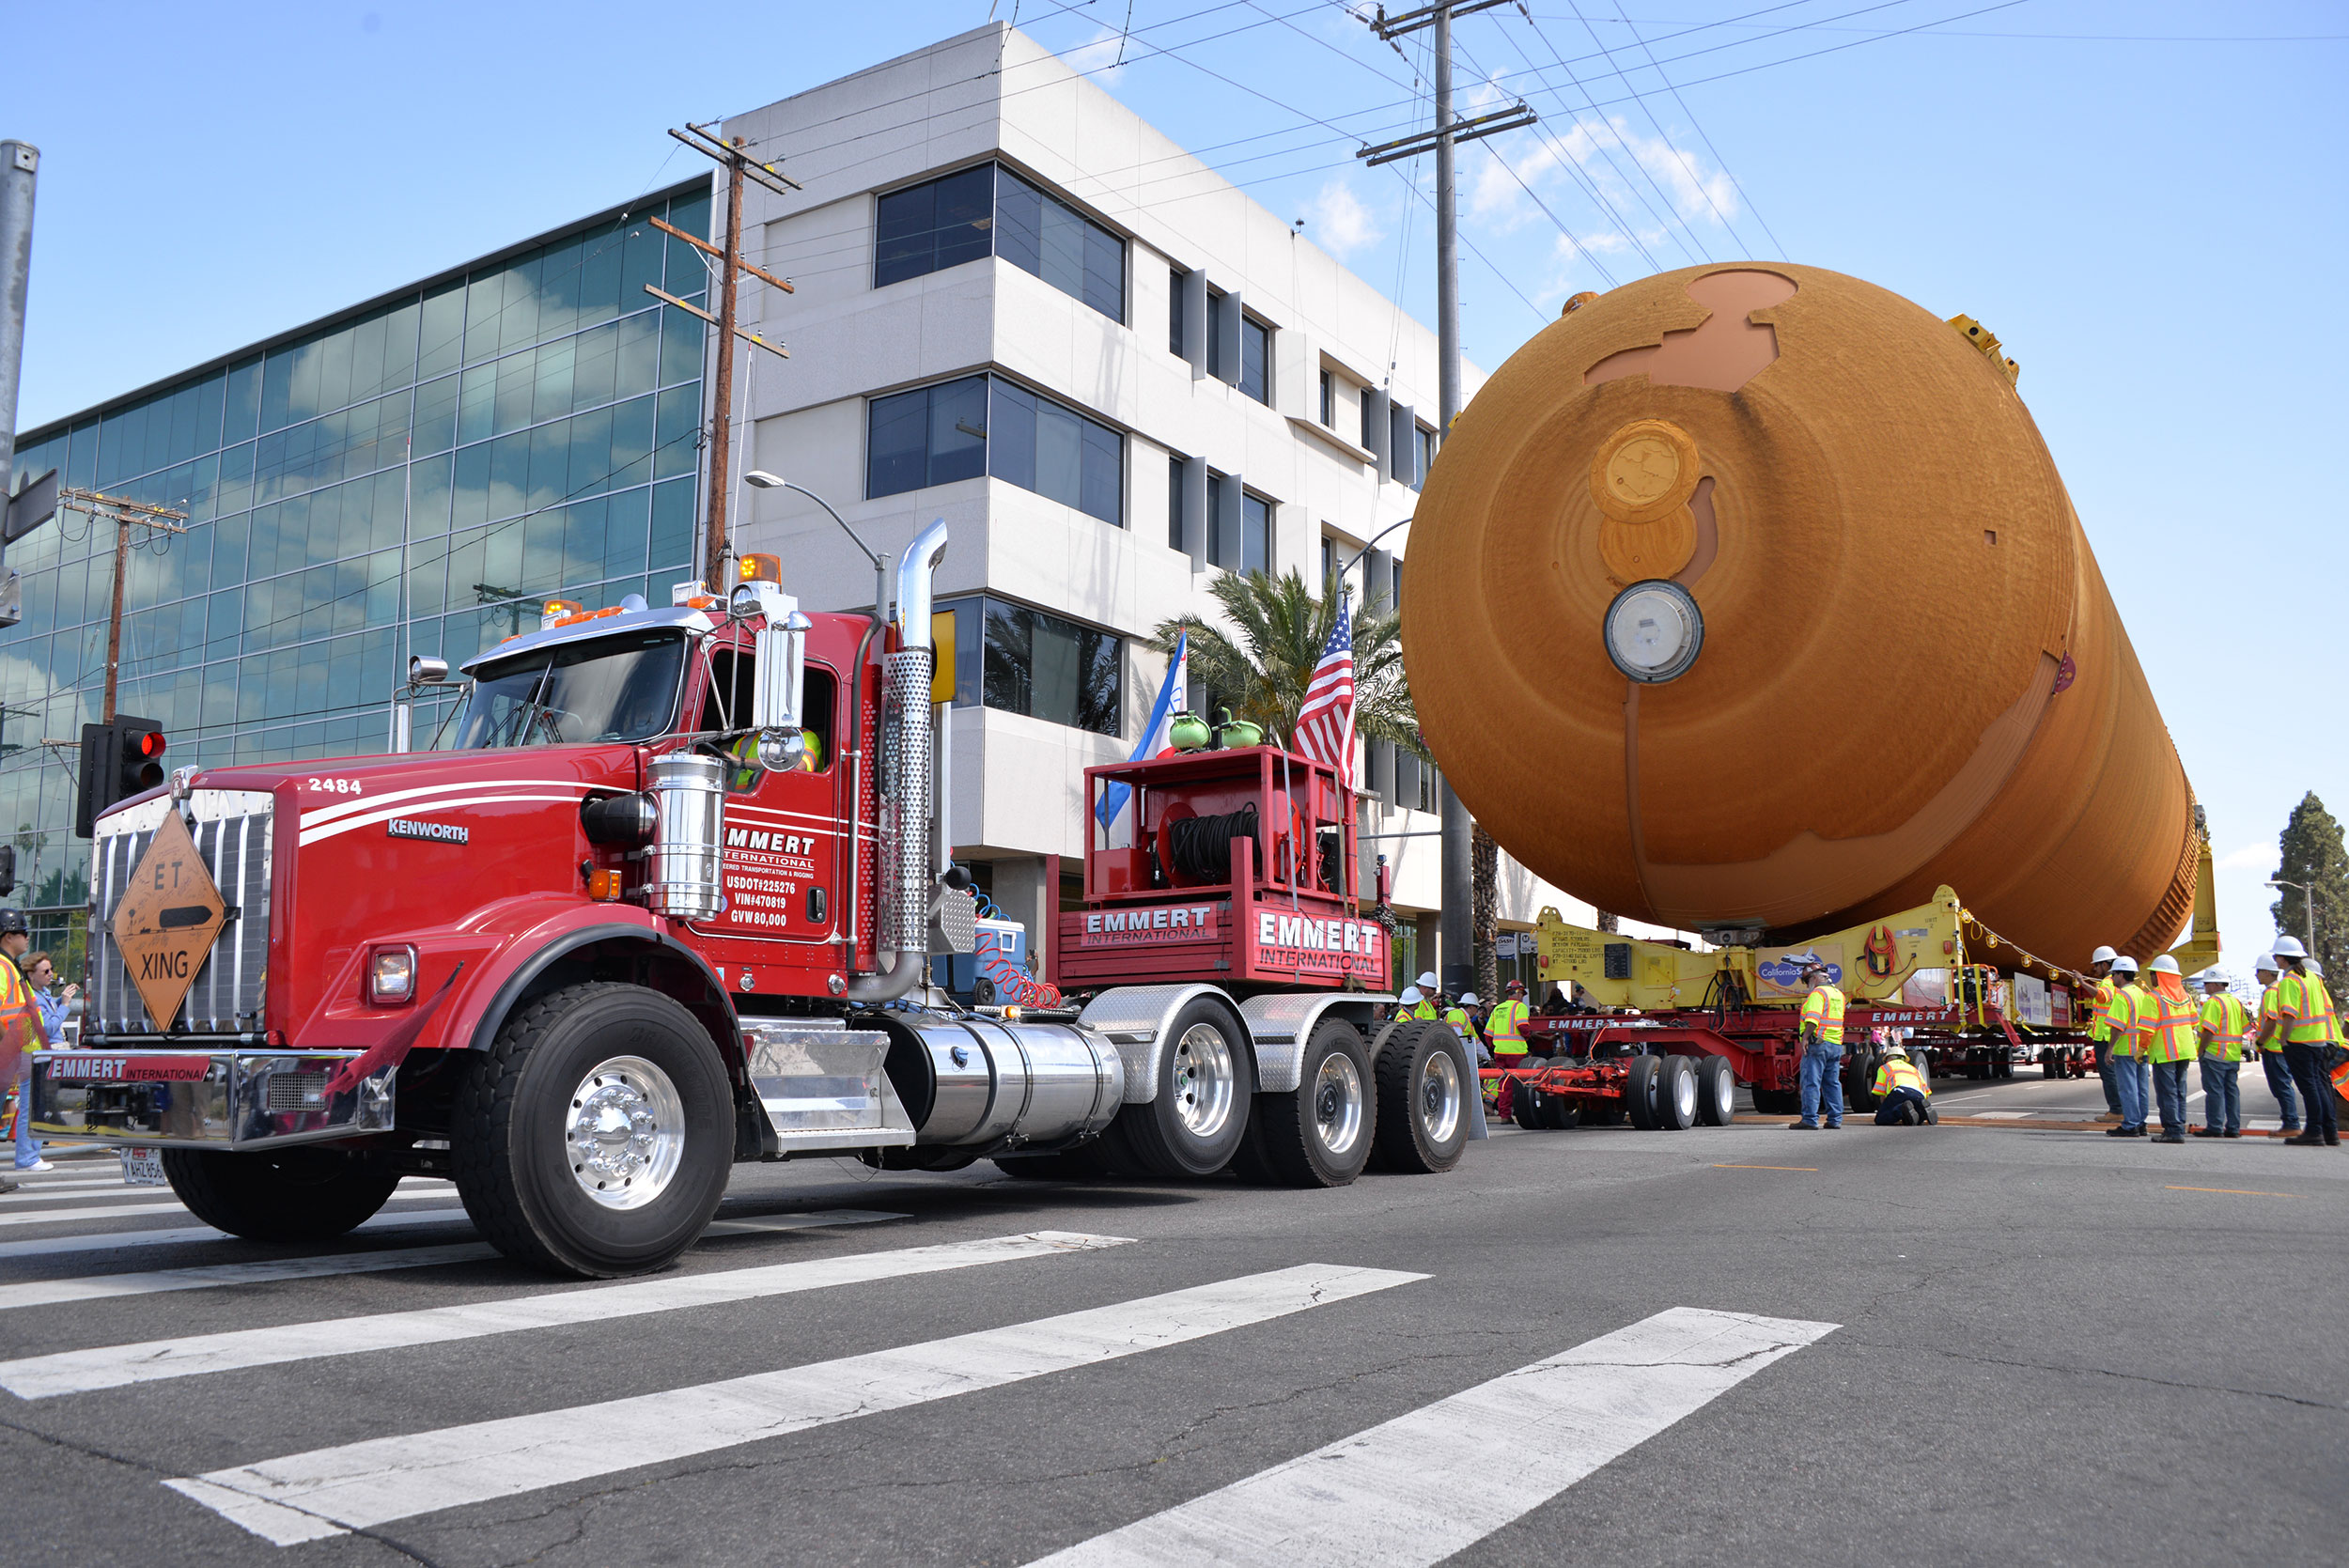 ET-94 was the main attraction during its parade to the California Science Center. The External Tank will eventually be mated with Space Shuttle Endeavour and displayed in a vertical, lauch-ready configuration. Credit: Julian Leek/JNN